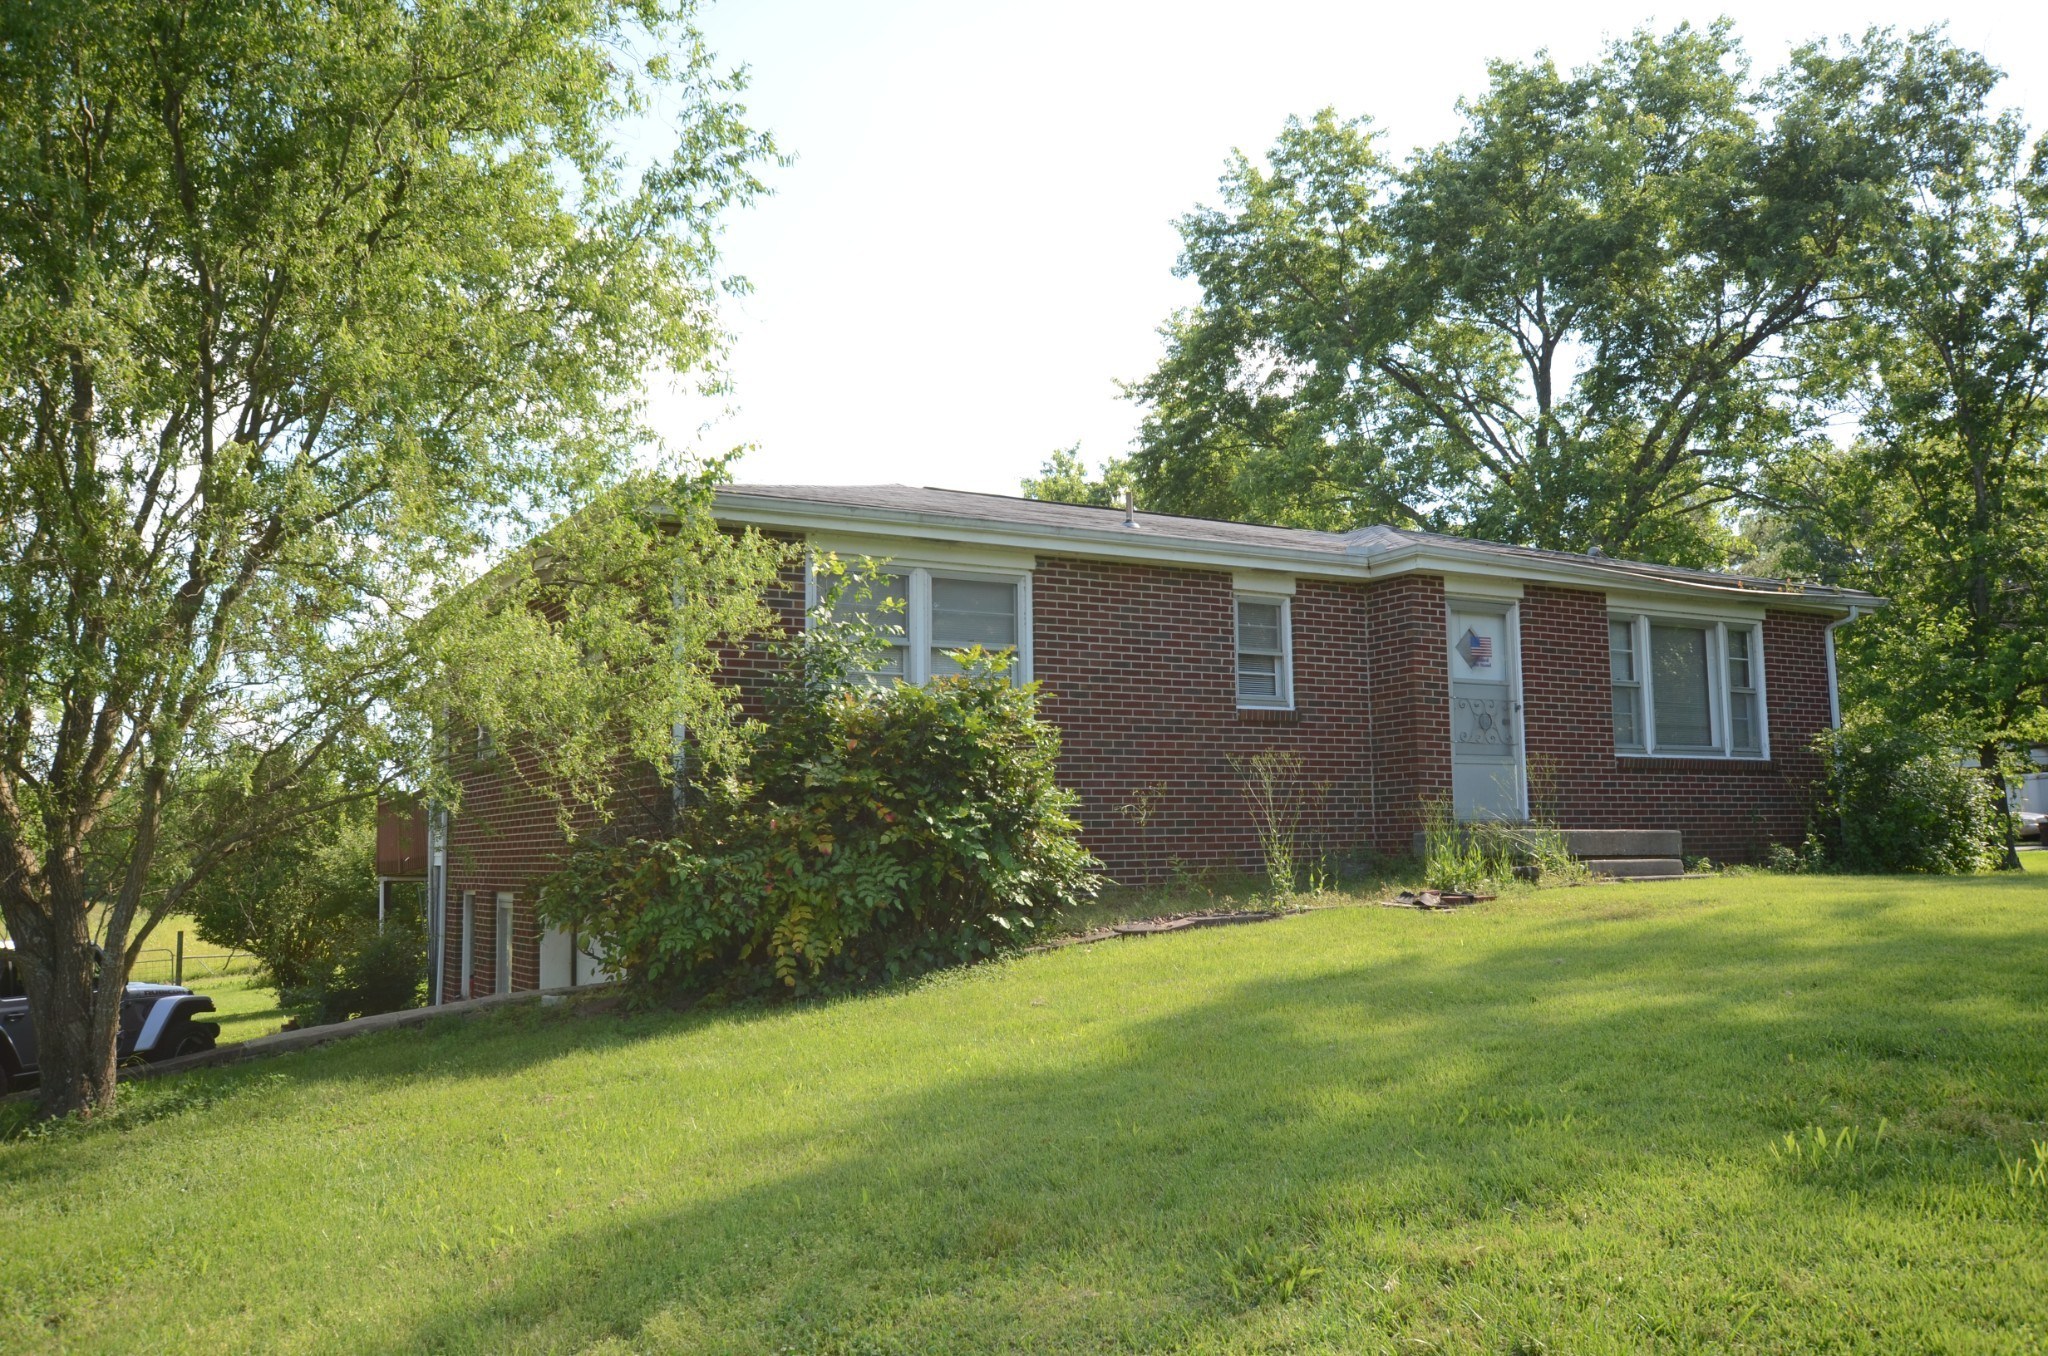 All brick ranch with full basement, ready for your renovation! Beautiful lot with plenty of trees and beautiful views! Large kitchen with plenty of cabinets. Large pantry area. Forrmal living room. Den with sunroom. Walk around deck plenty of room to entertain. 1 car garage and plenty of parking. Trane hvac